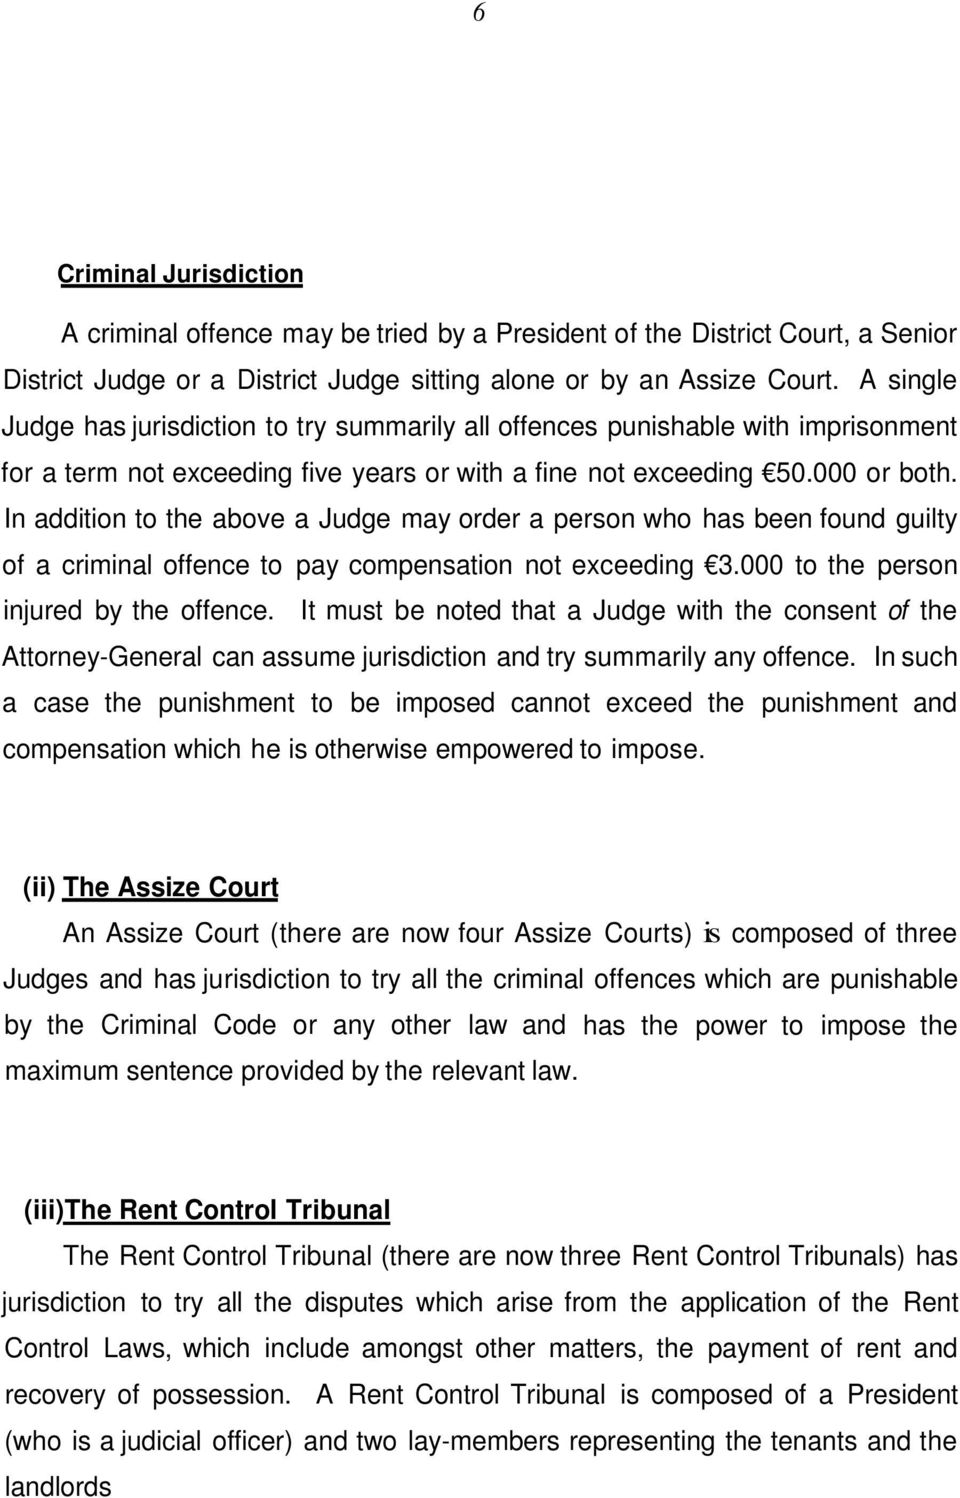 In addition to the above a Judge may order a person who has been found guilty of a criminal offence to pay compensation not exceeding 3.000 to the person injured by the offence.